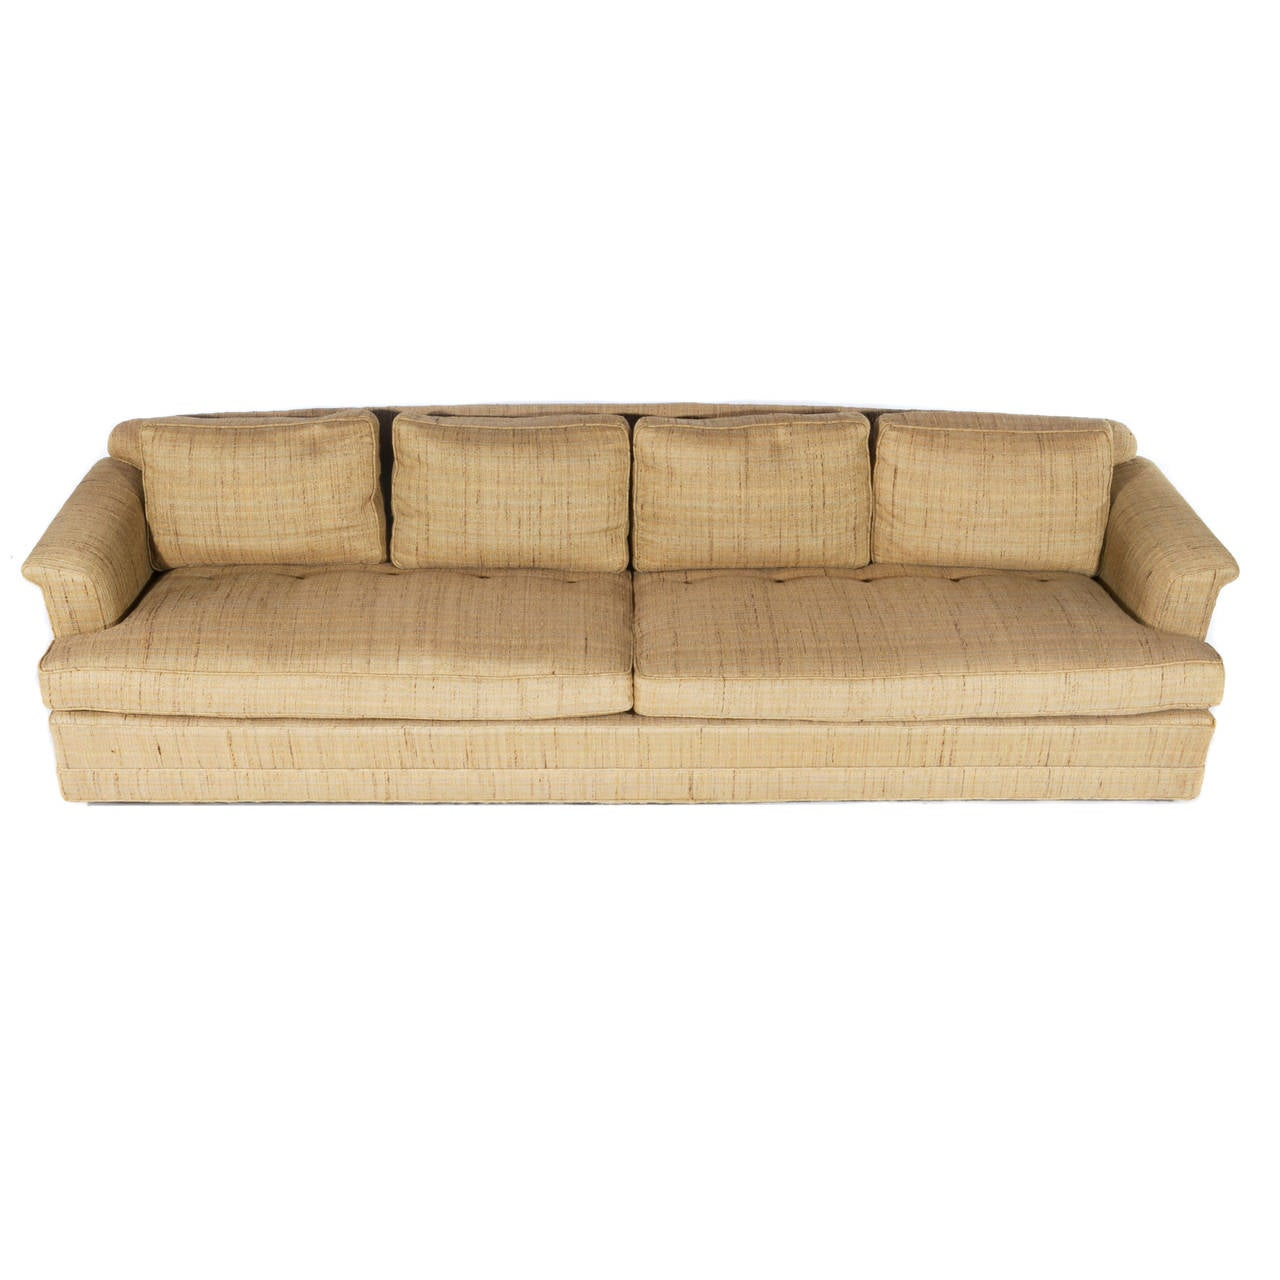 Classic Dunbar form with down-stuffed seat and back cushions. Raised on casters. Large, deep and comfortable, with high-quality Dunbar construction. Signed Dunbar in decking. Measure: Arms are 21-1/2